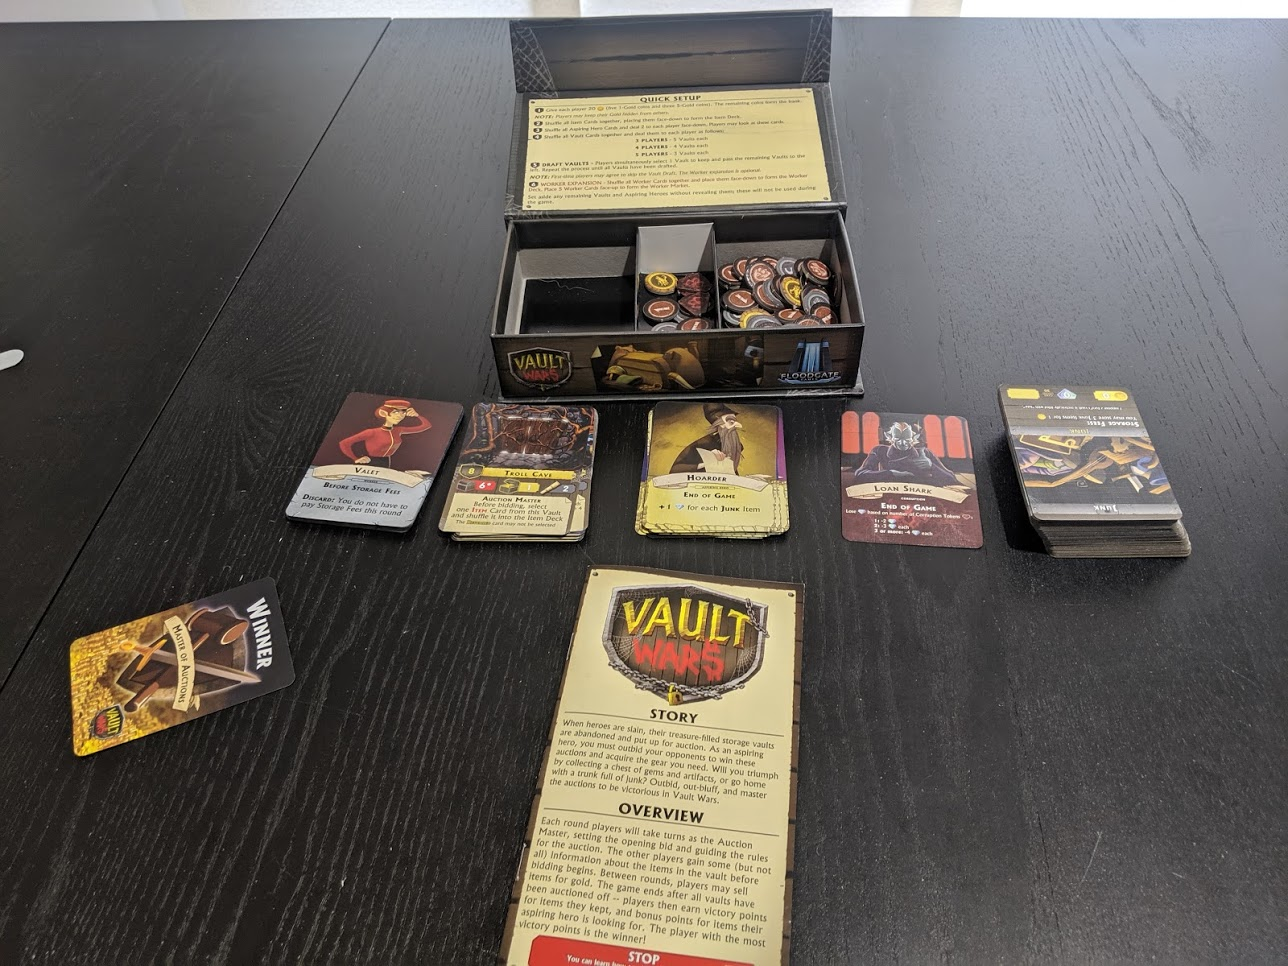 Displaying all of the components in Vault Wars as well as the box it comes in.